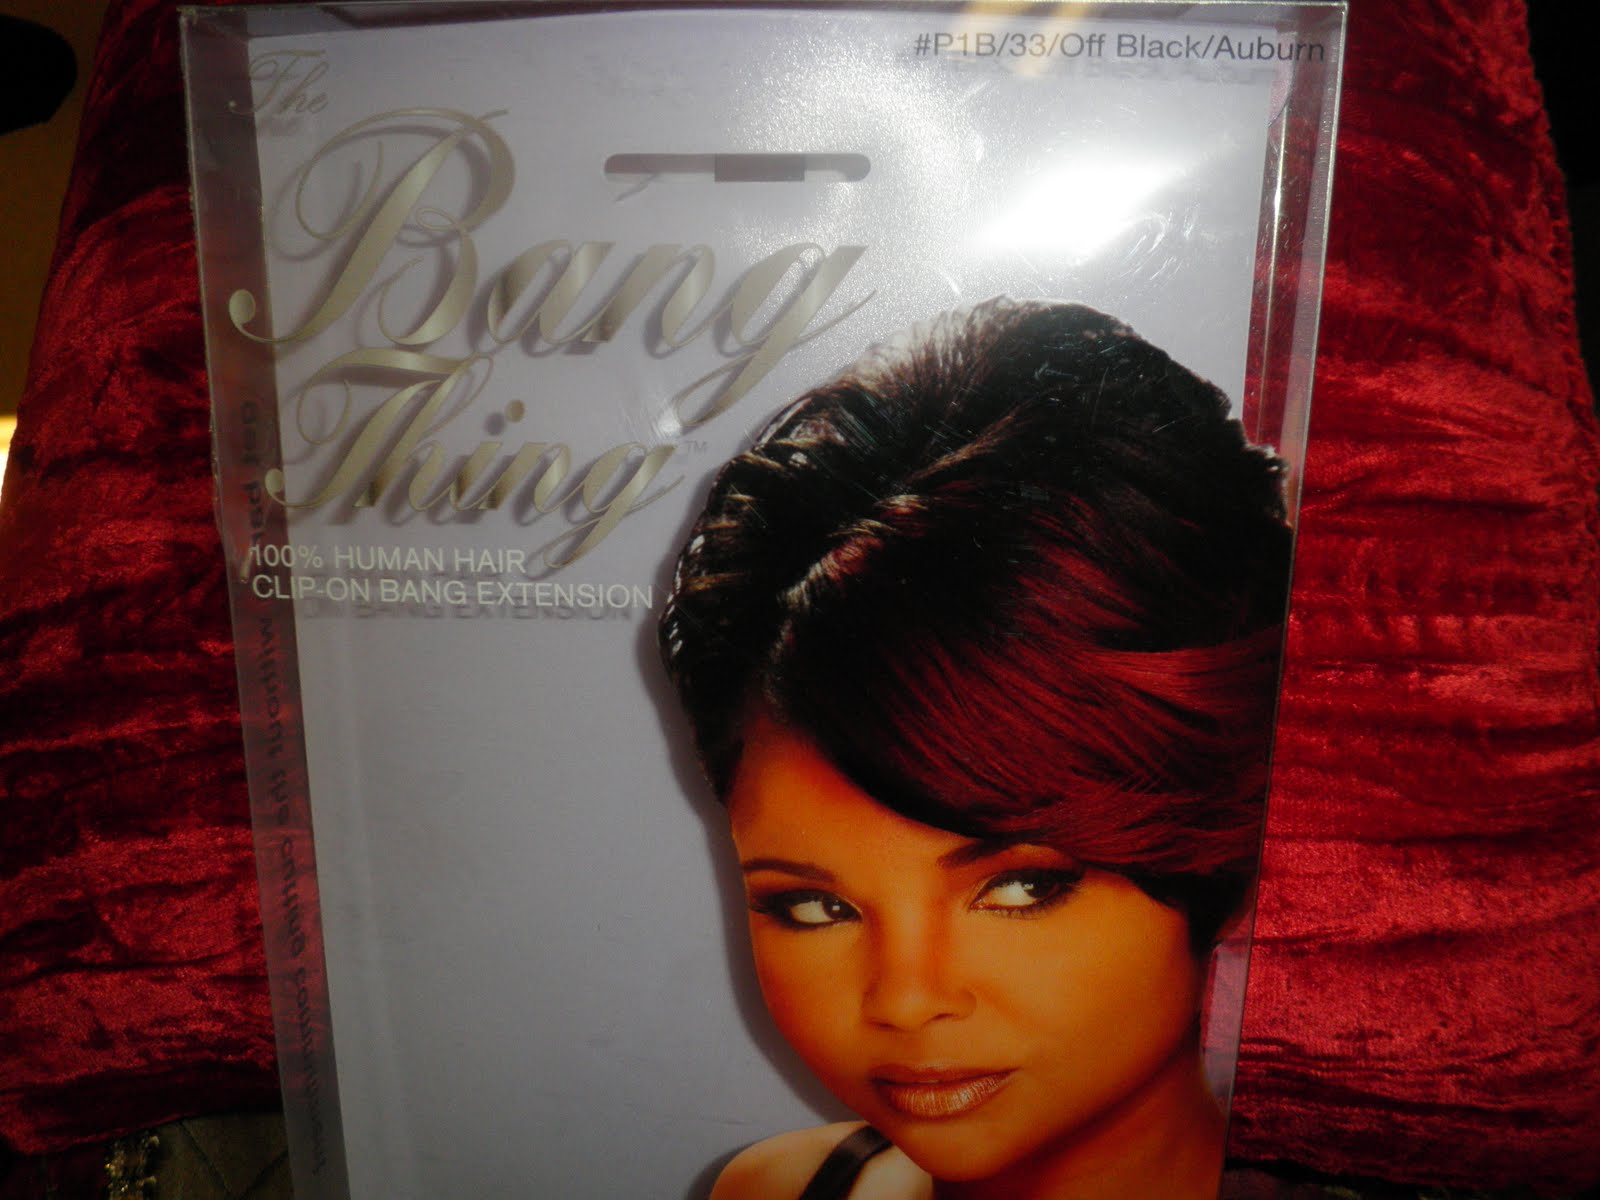 Phenomenalhaircare Clip In Bang Extension Unit